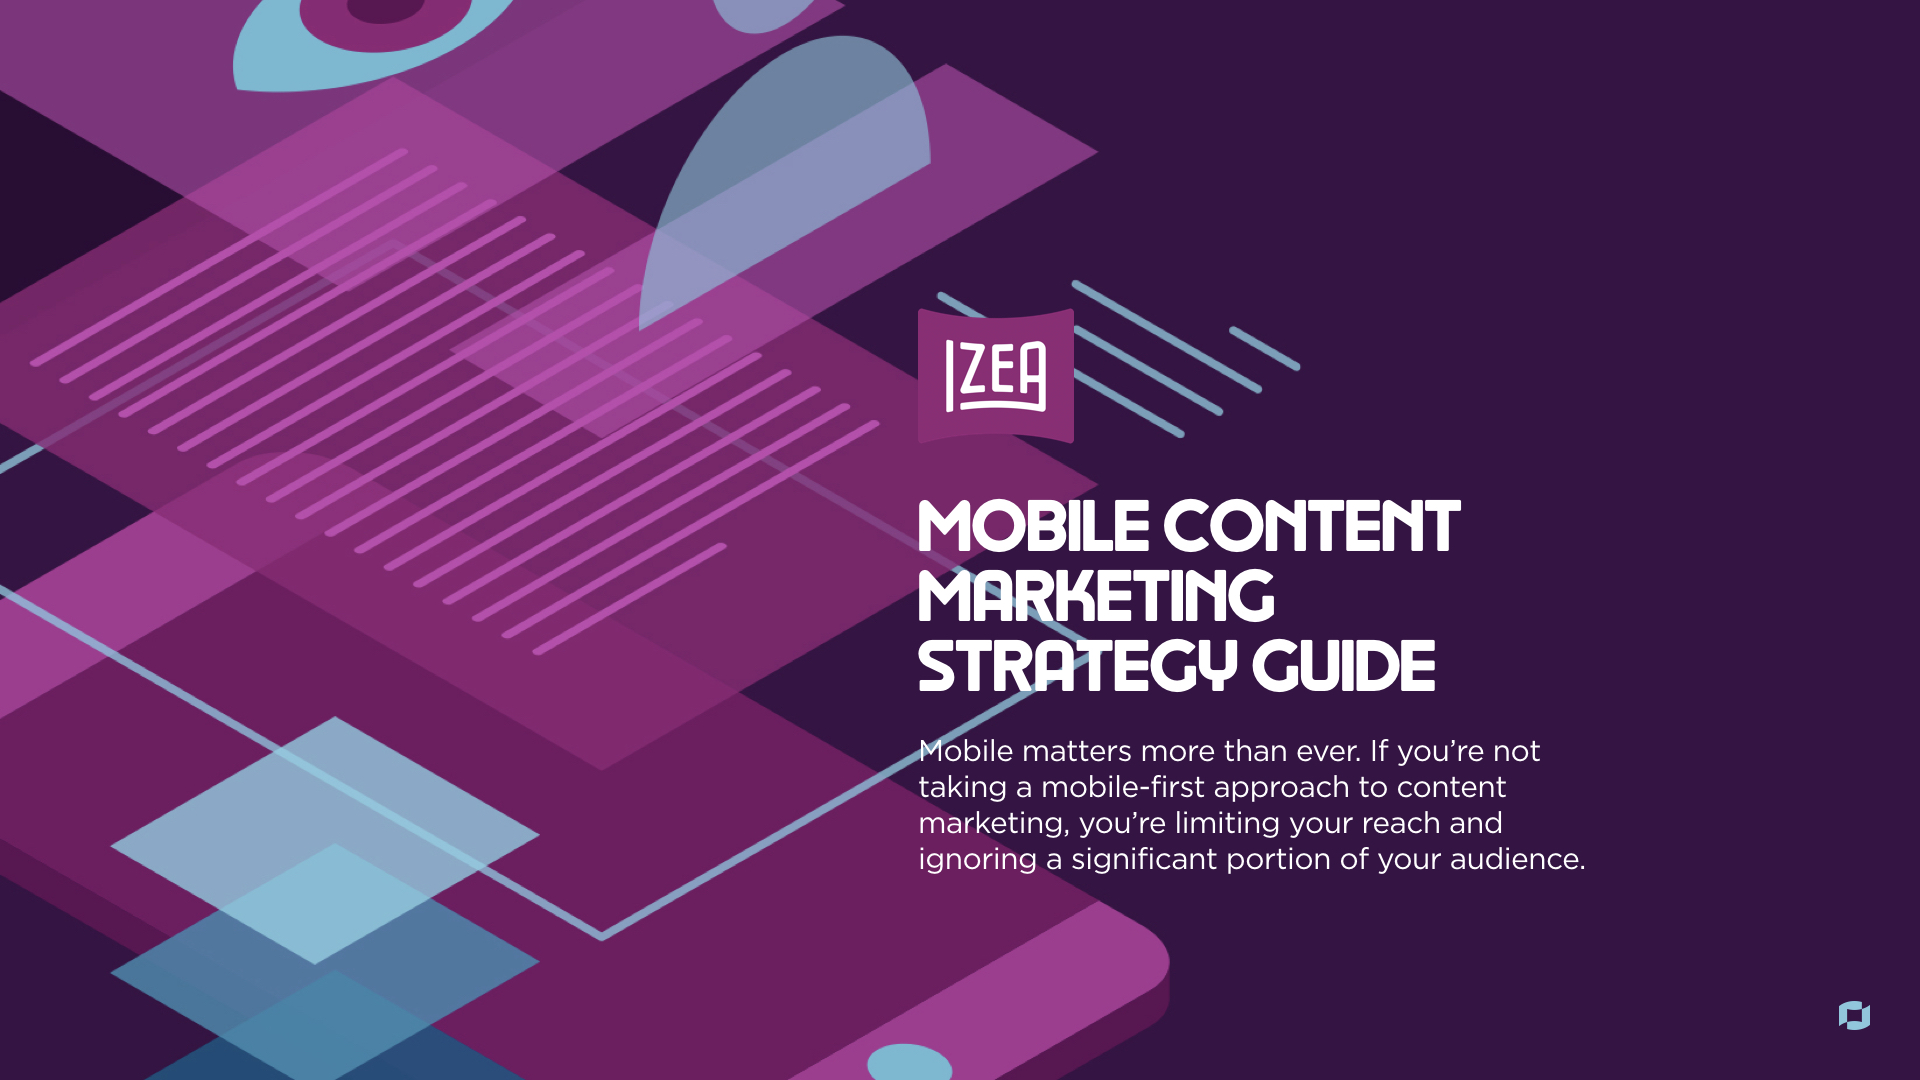 Mobile Content Marketing Ebook Cover